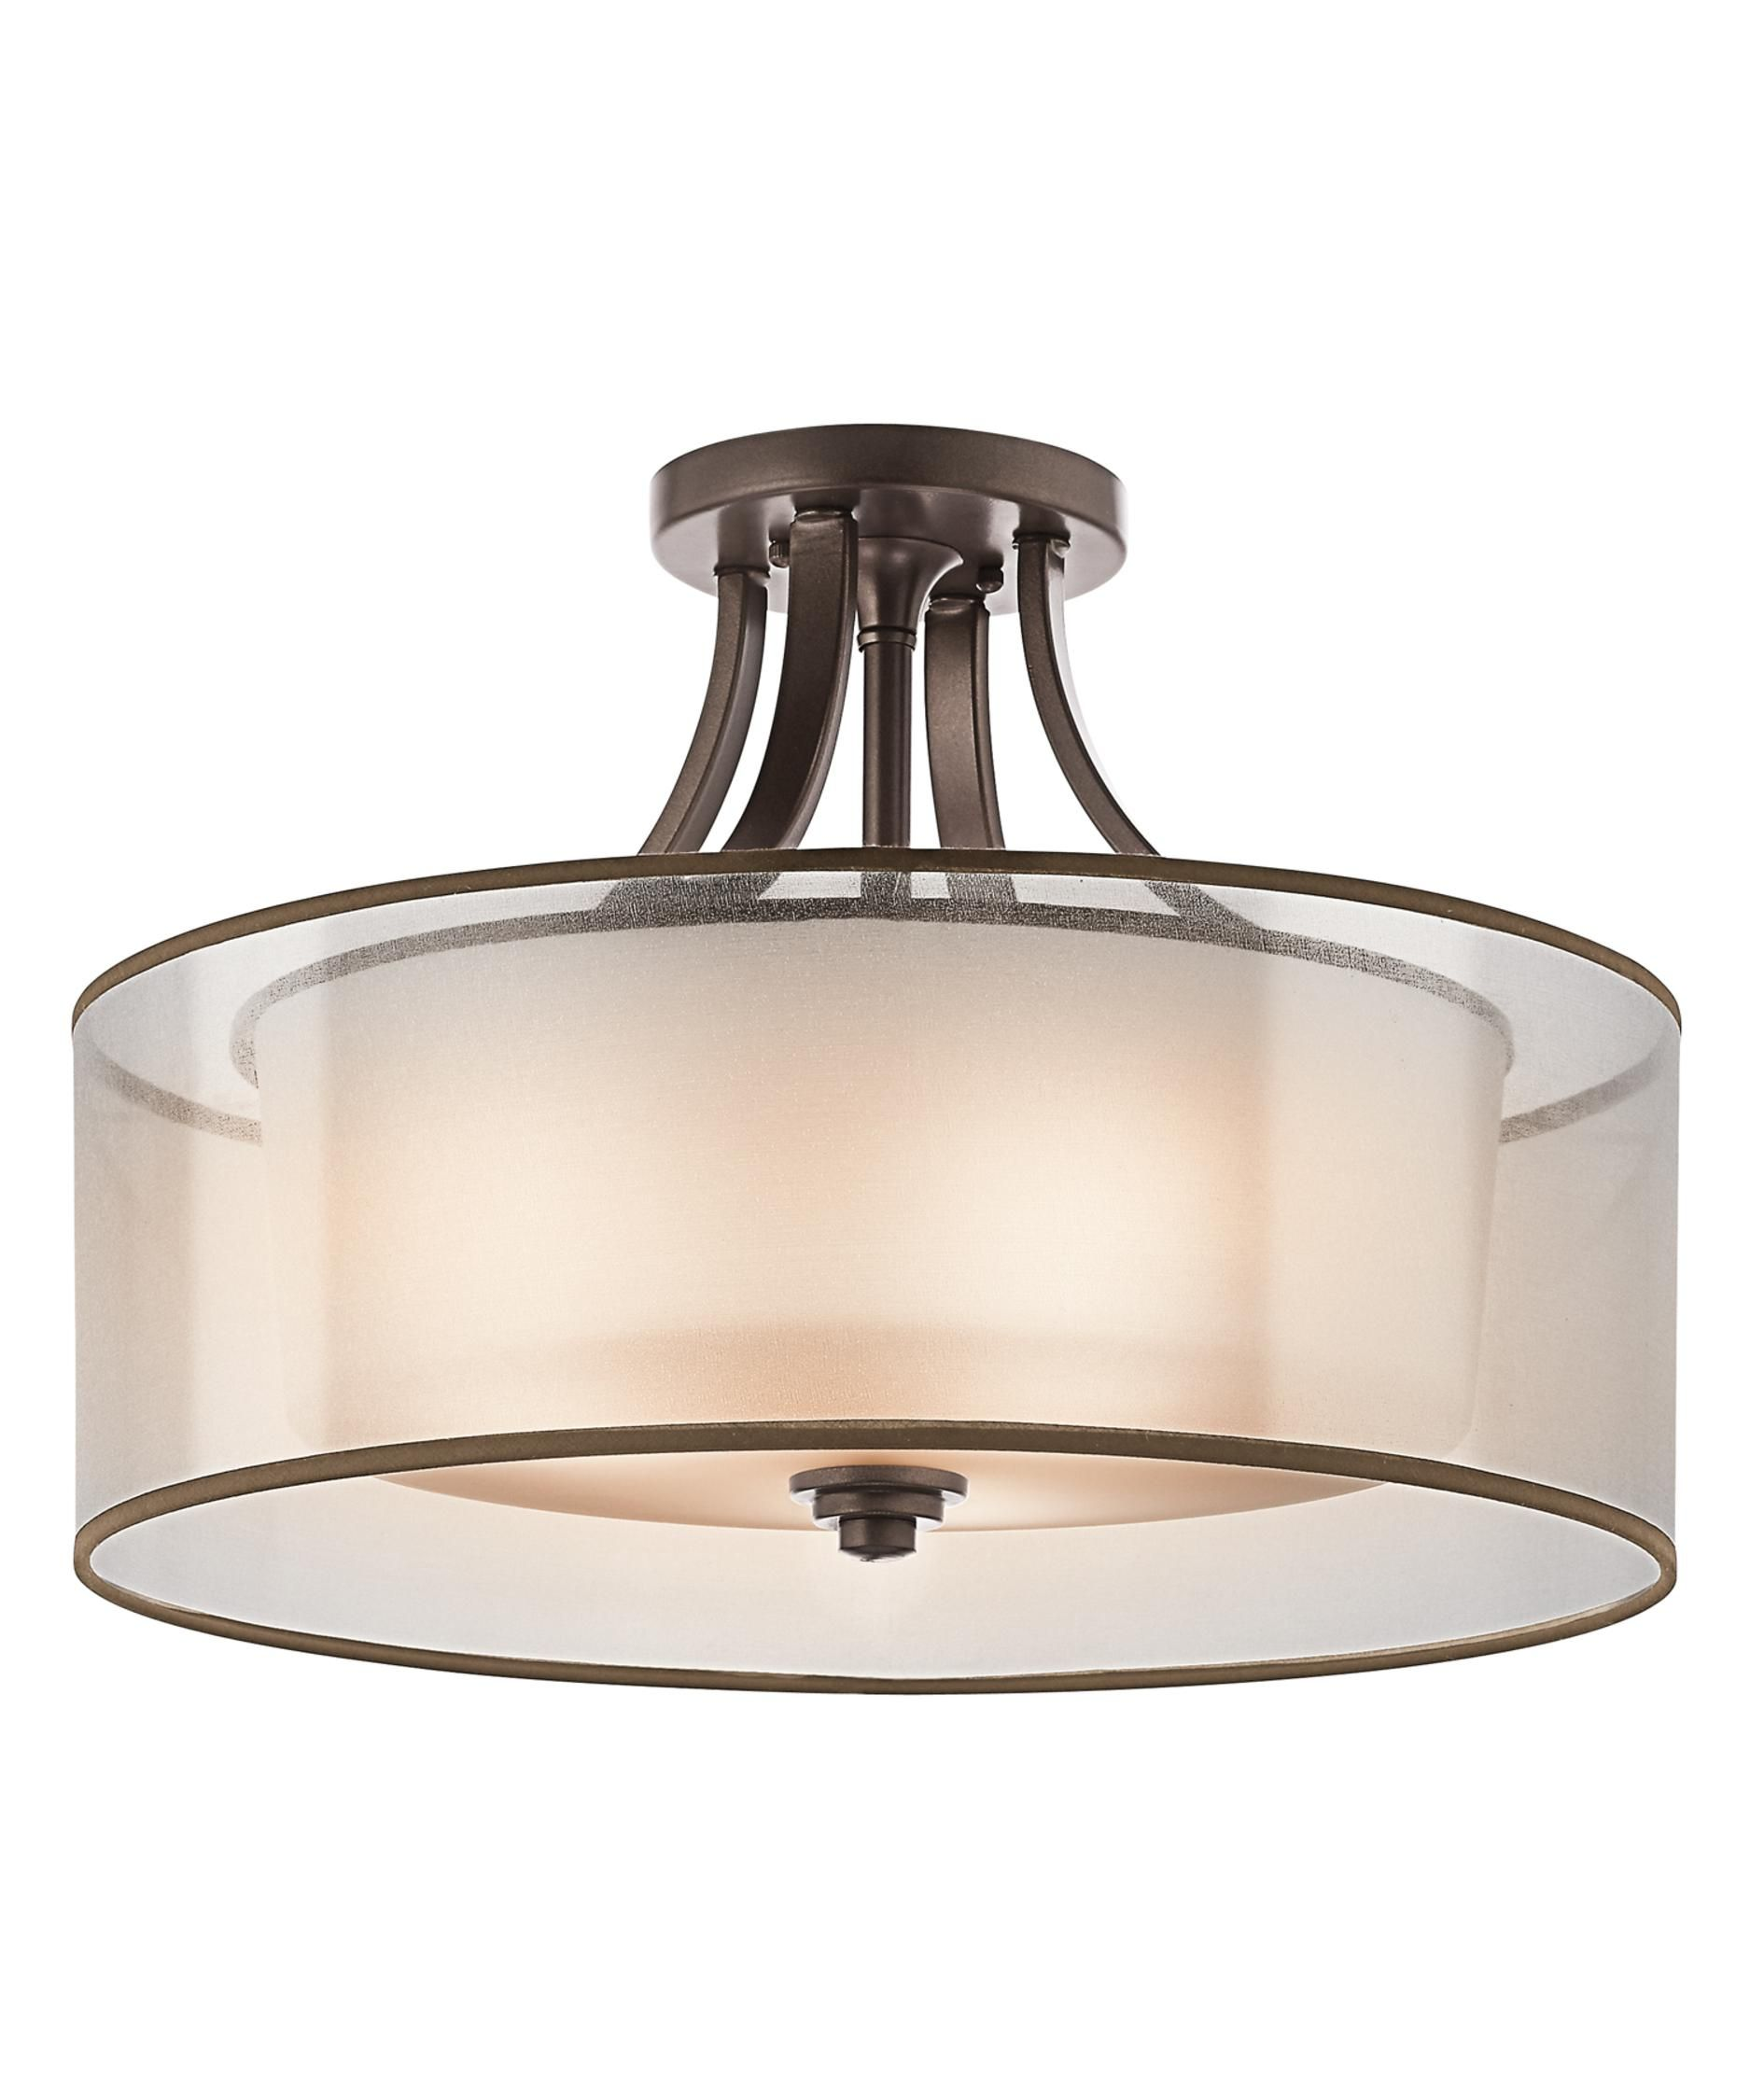 Lacey 20 Inch 4 Light Semi Flush Mount by Kichler Lighting